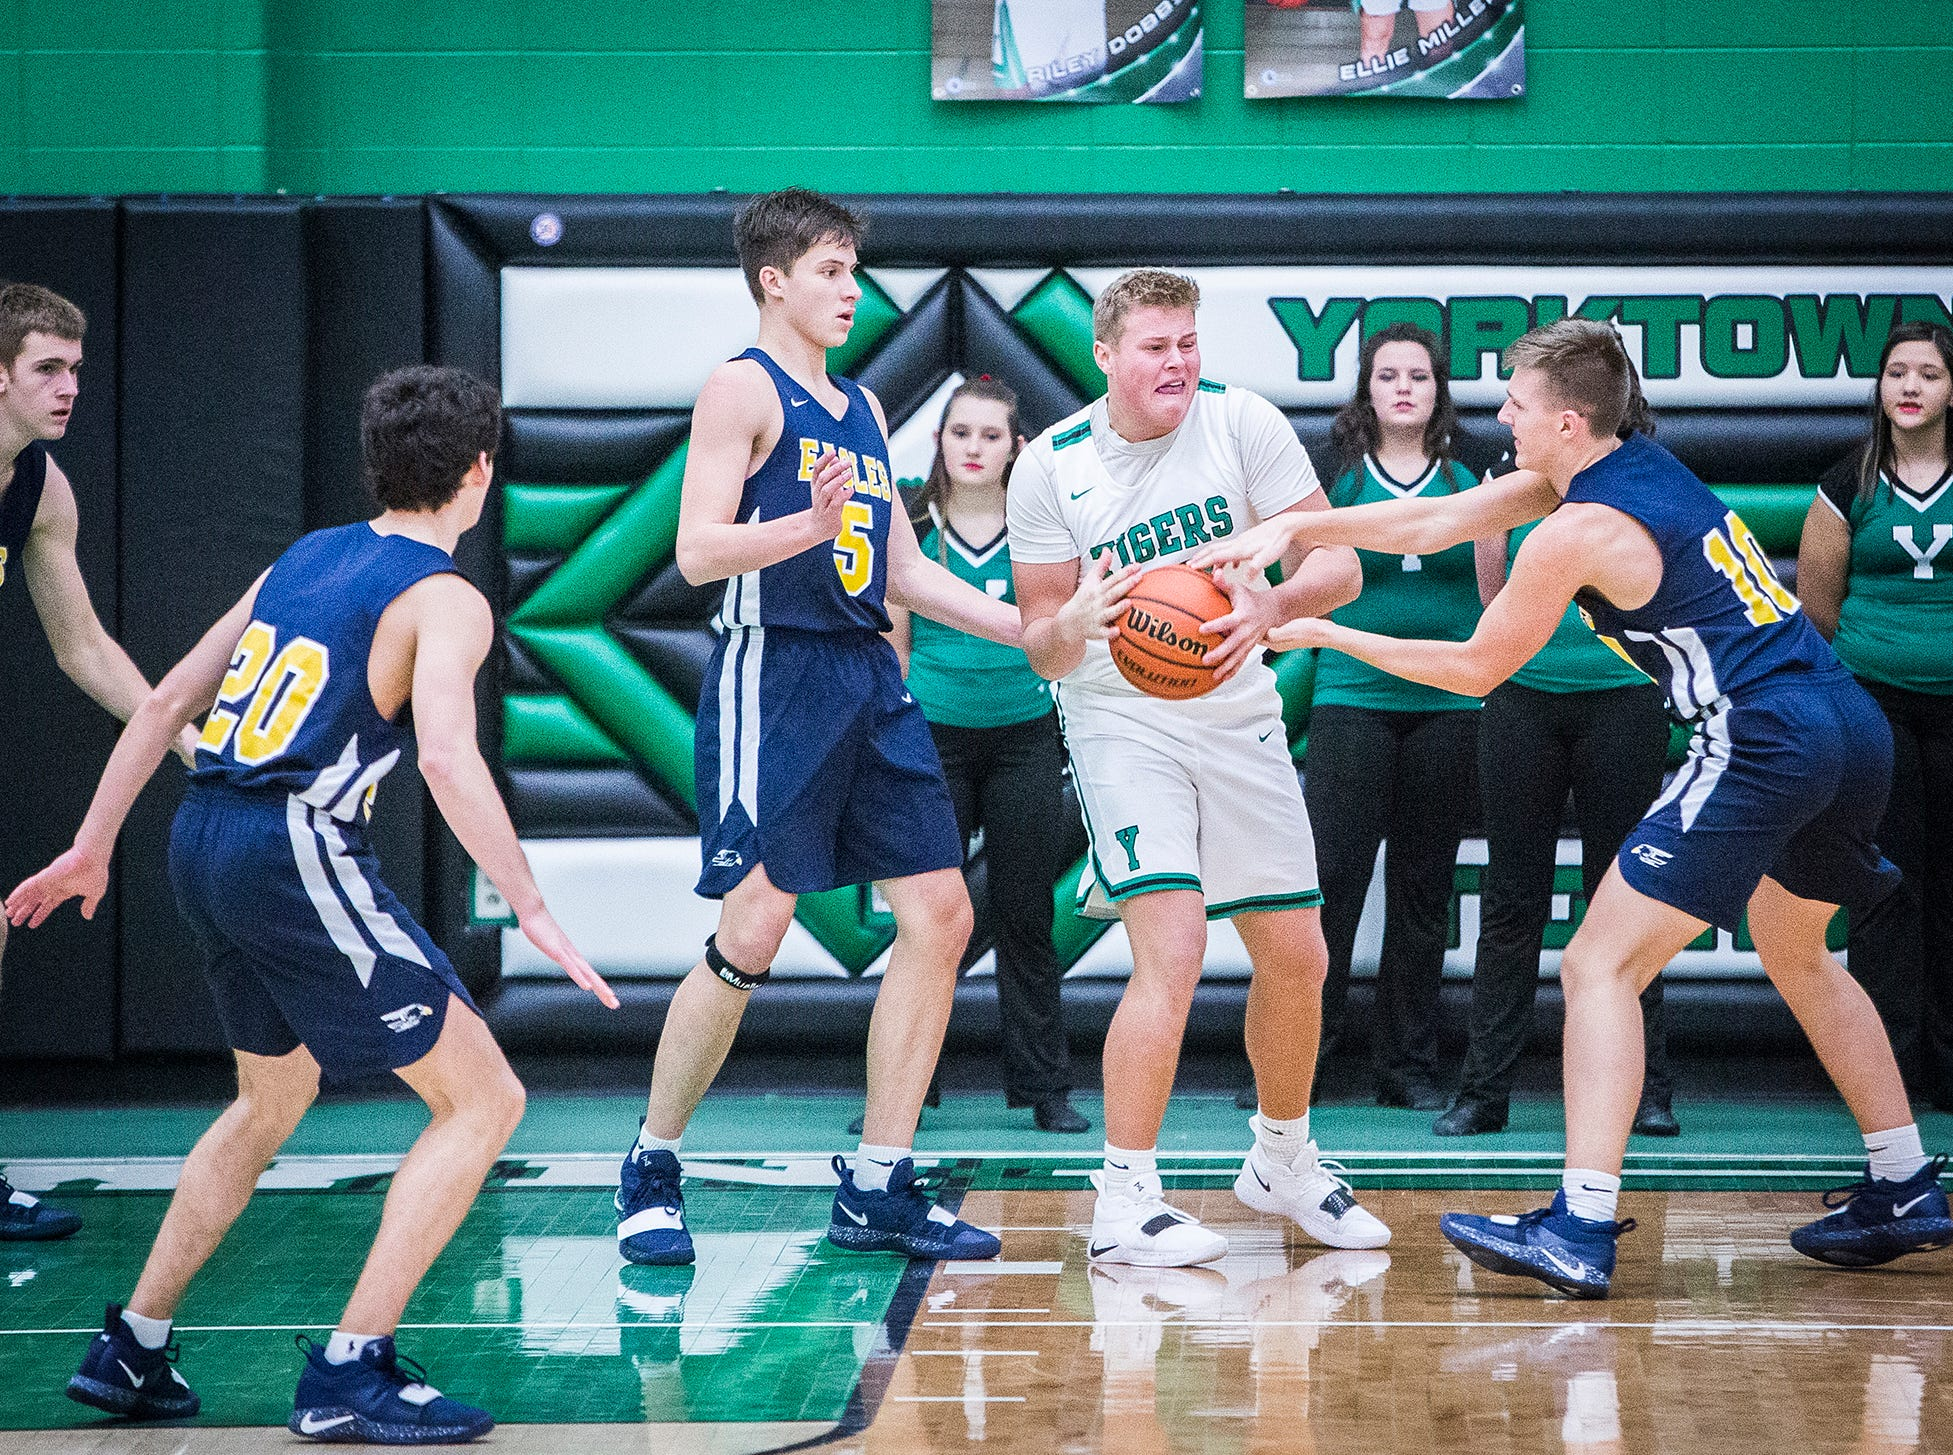 Delta defeated Yorktown during their game at Yorktown High School Saturday, Dec. 7, 2018.